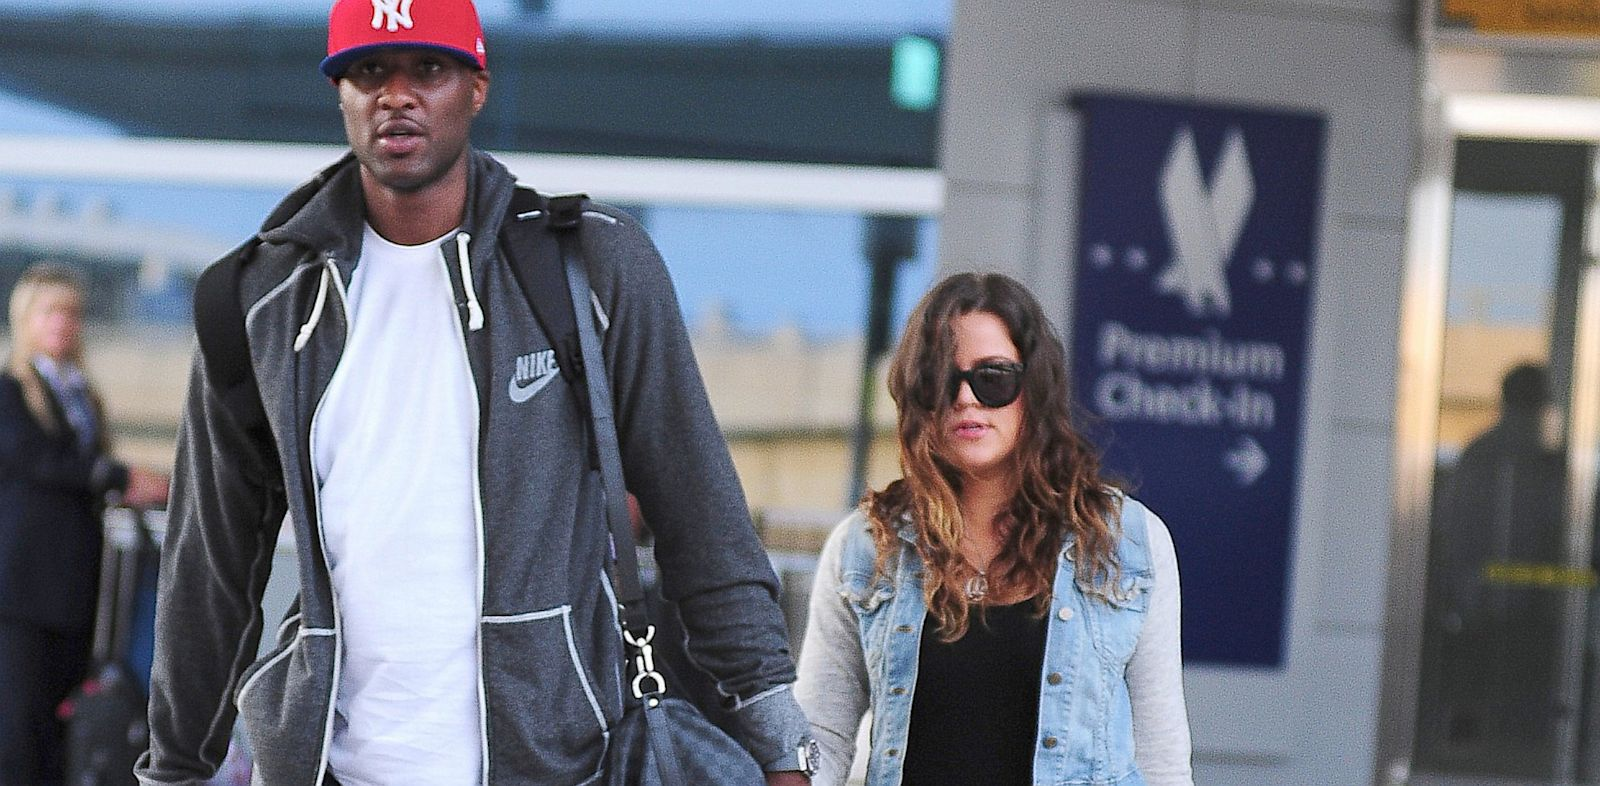 PHOTO: Lamar Odom and Khloe Kardashian are seen in New York, June 19, 2012.